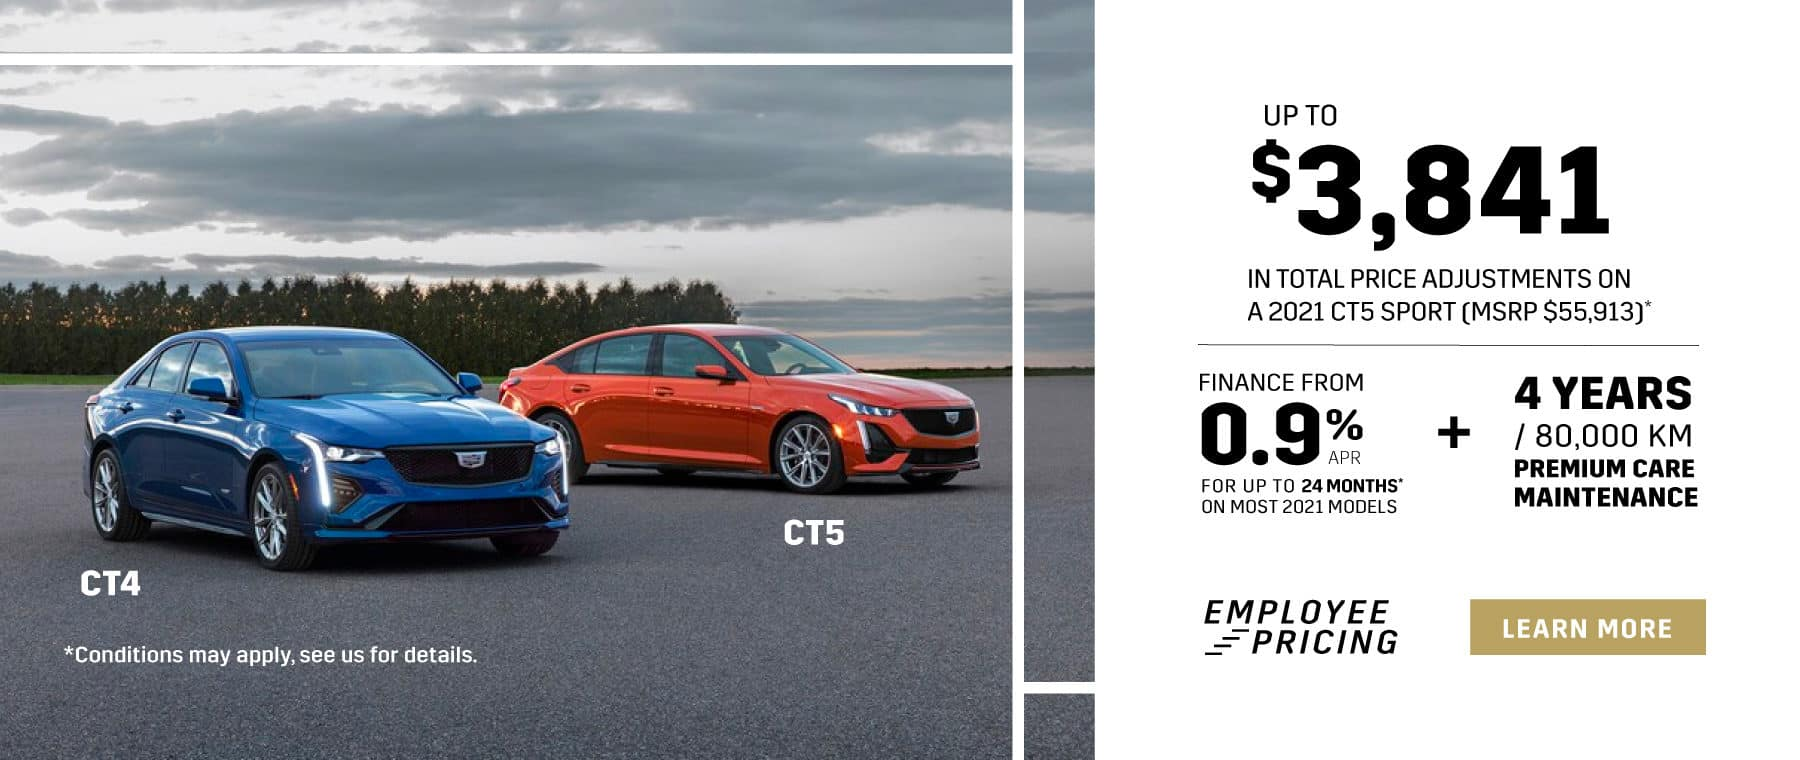 Cadillac CT4 CT5 Employee Pricing in Mississauga - Applewood Cadillac